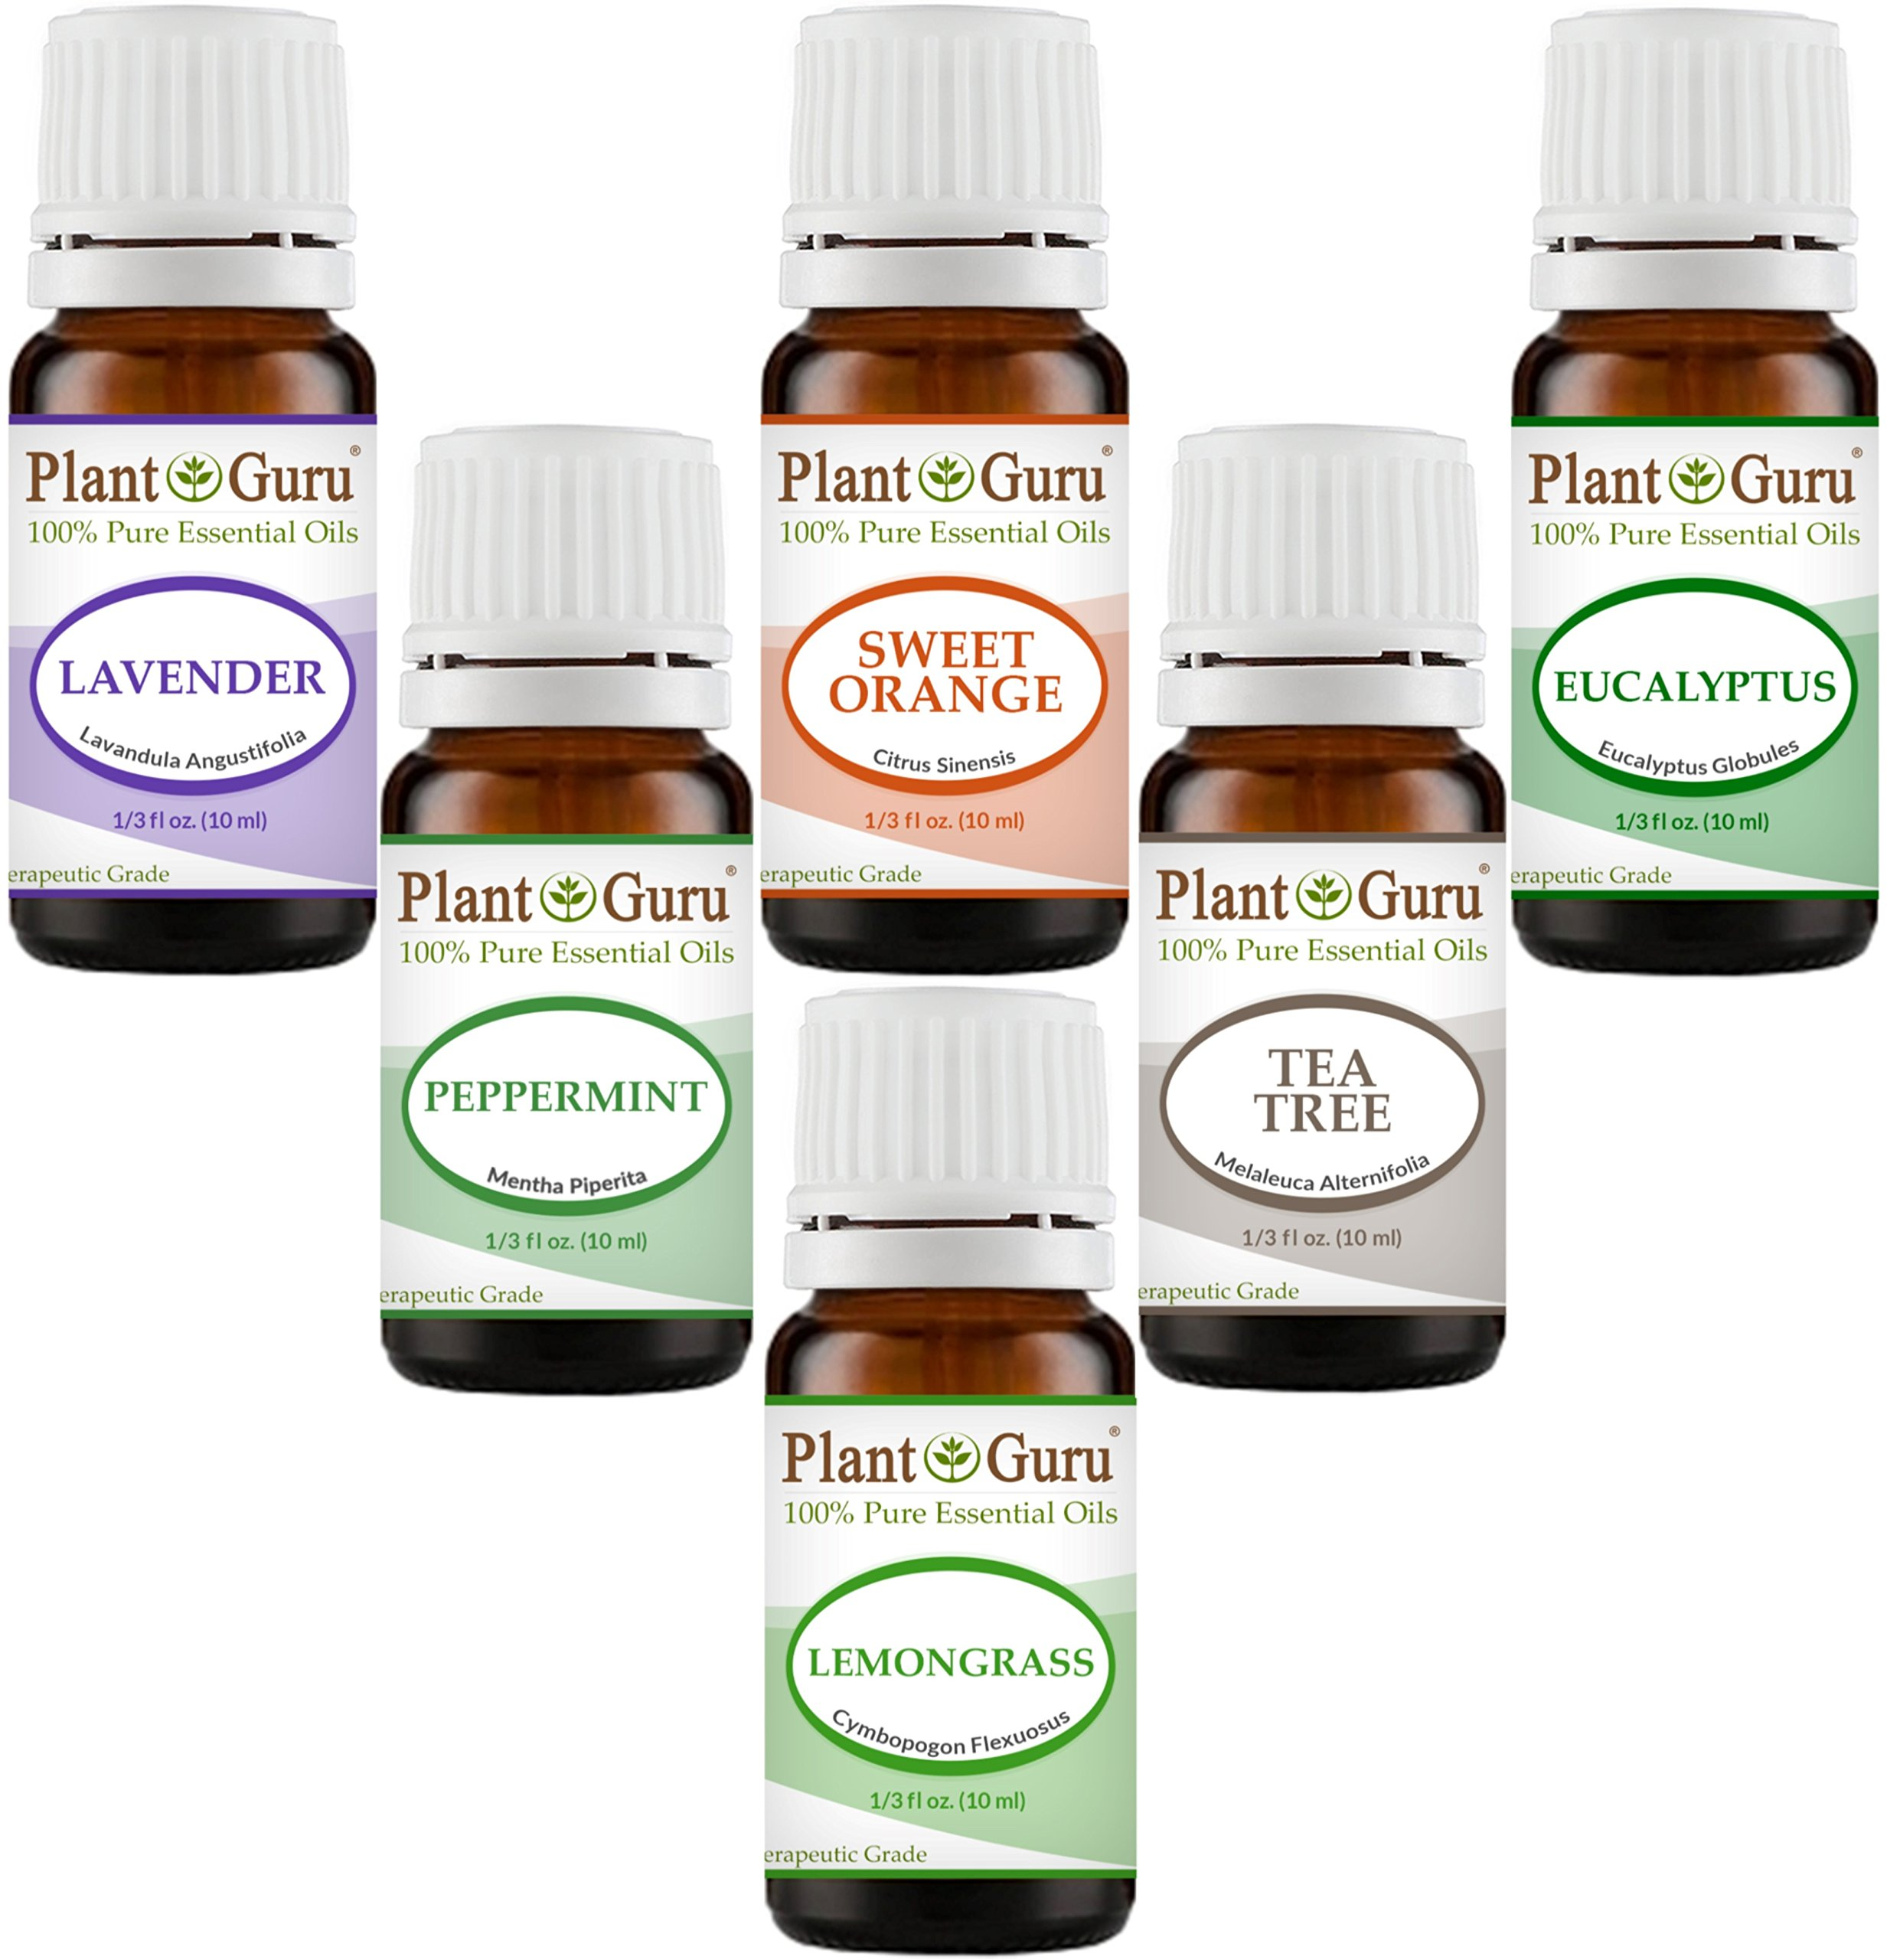 Essential Oil Variety Set Kit Top 6 Pack - 100% Pure Therapeutic Grade Oils 10 ml. Includes Peppermint, Lavender, Sweet Orange, Lemongrass, Eucalyptus & Tea Tree